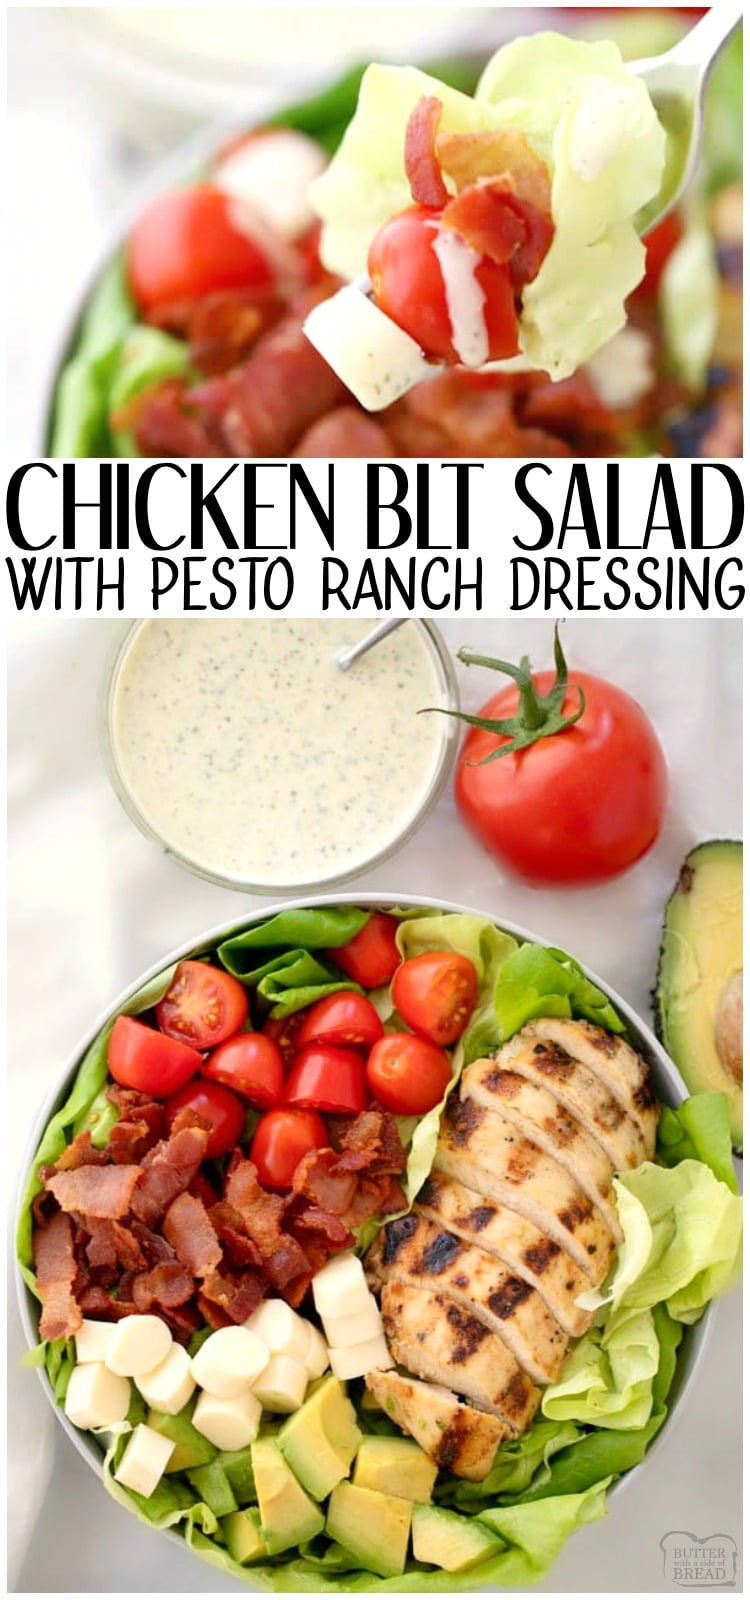 Grilled Chicken BLT Salad is an easy summer salad recipe filled with grilled marinated chicken, bacon, tomatoes, cheese and butter lettuce. Topped with a creamy pesto ranch dressing that's easy and flavorful, this salad is a huge hit!  #BLT #chicken #salad #ranch #recipe from Butter With a Side of Bread